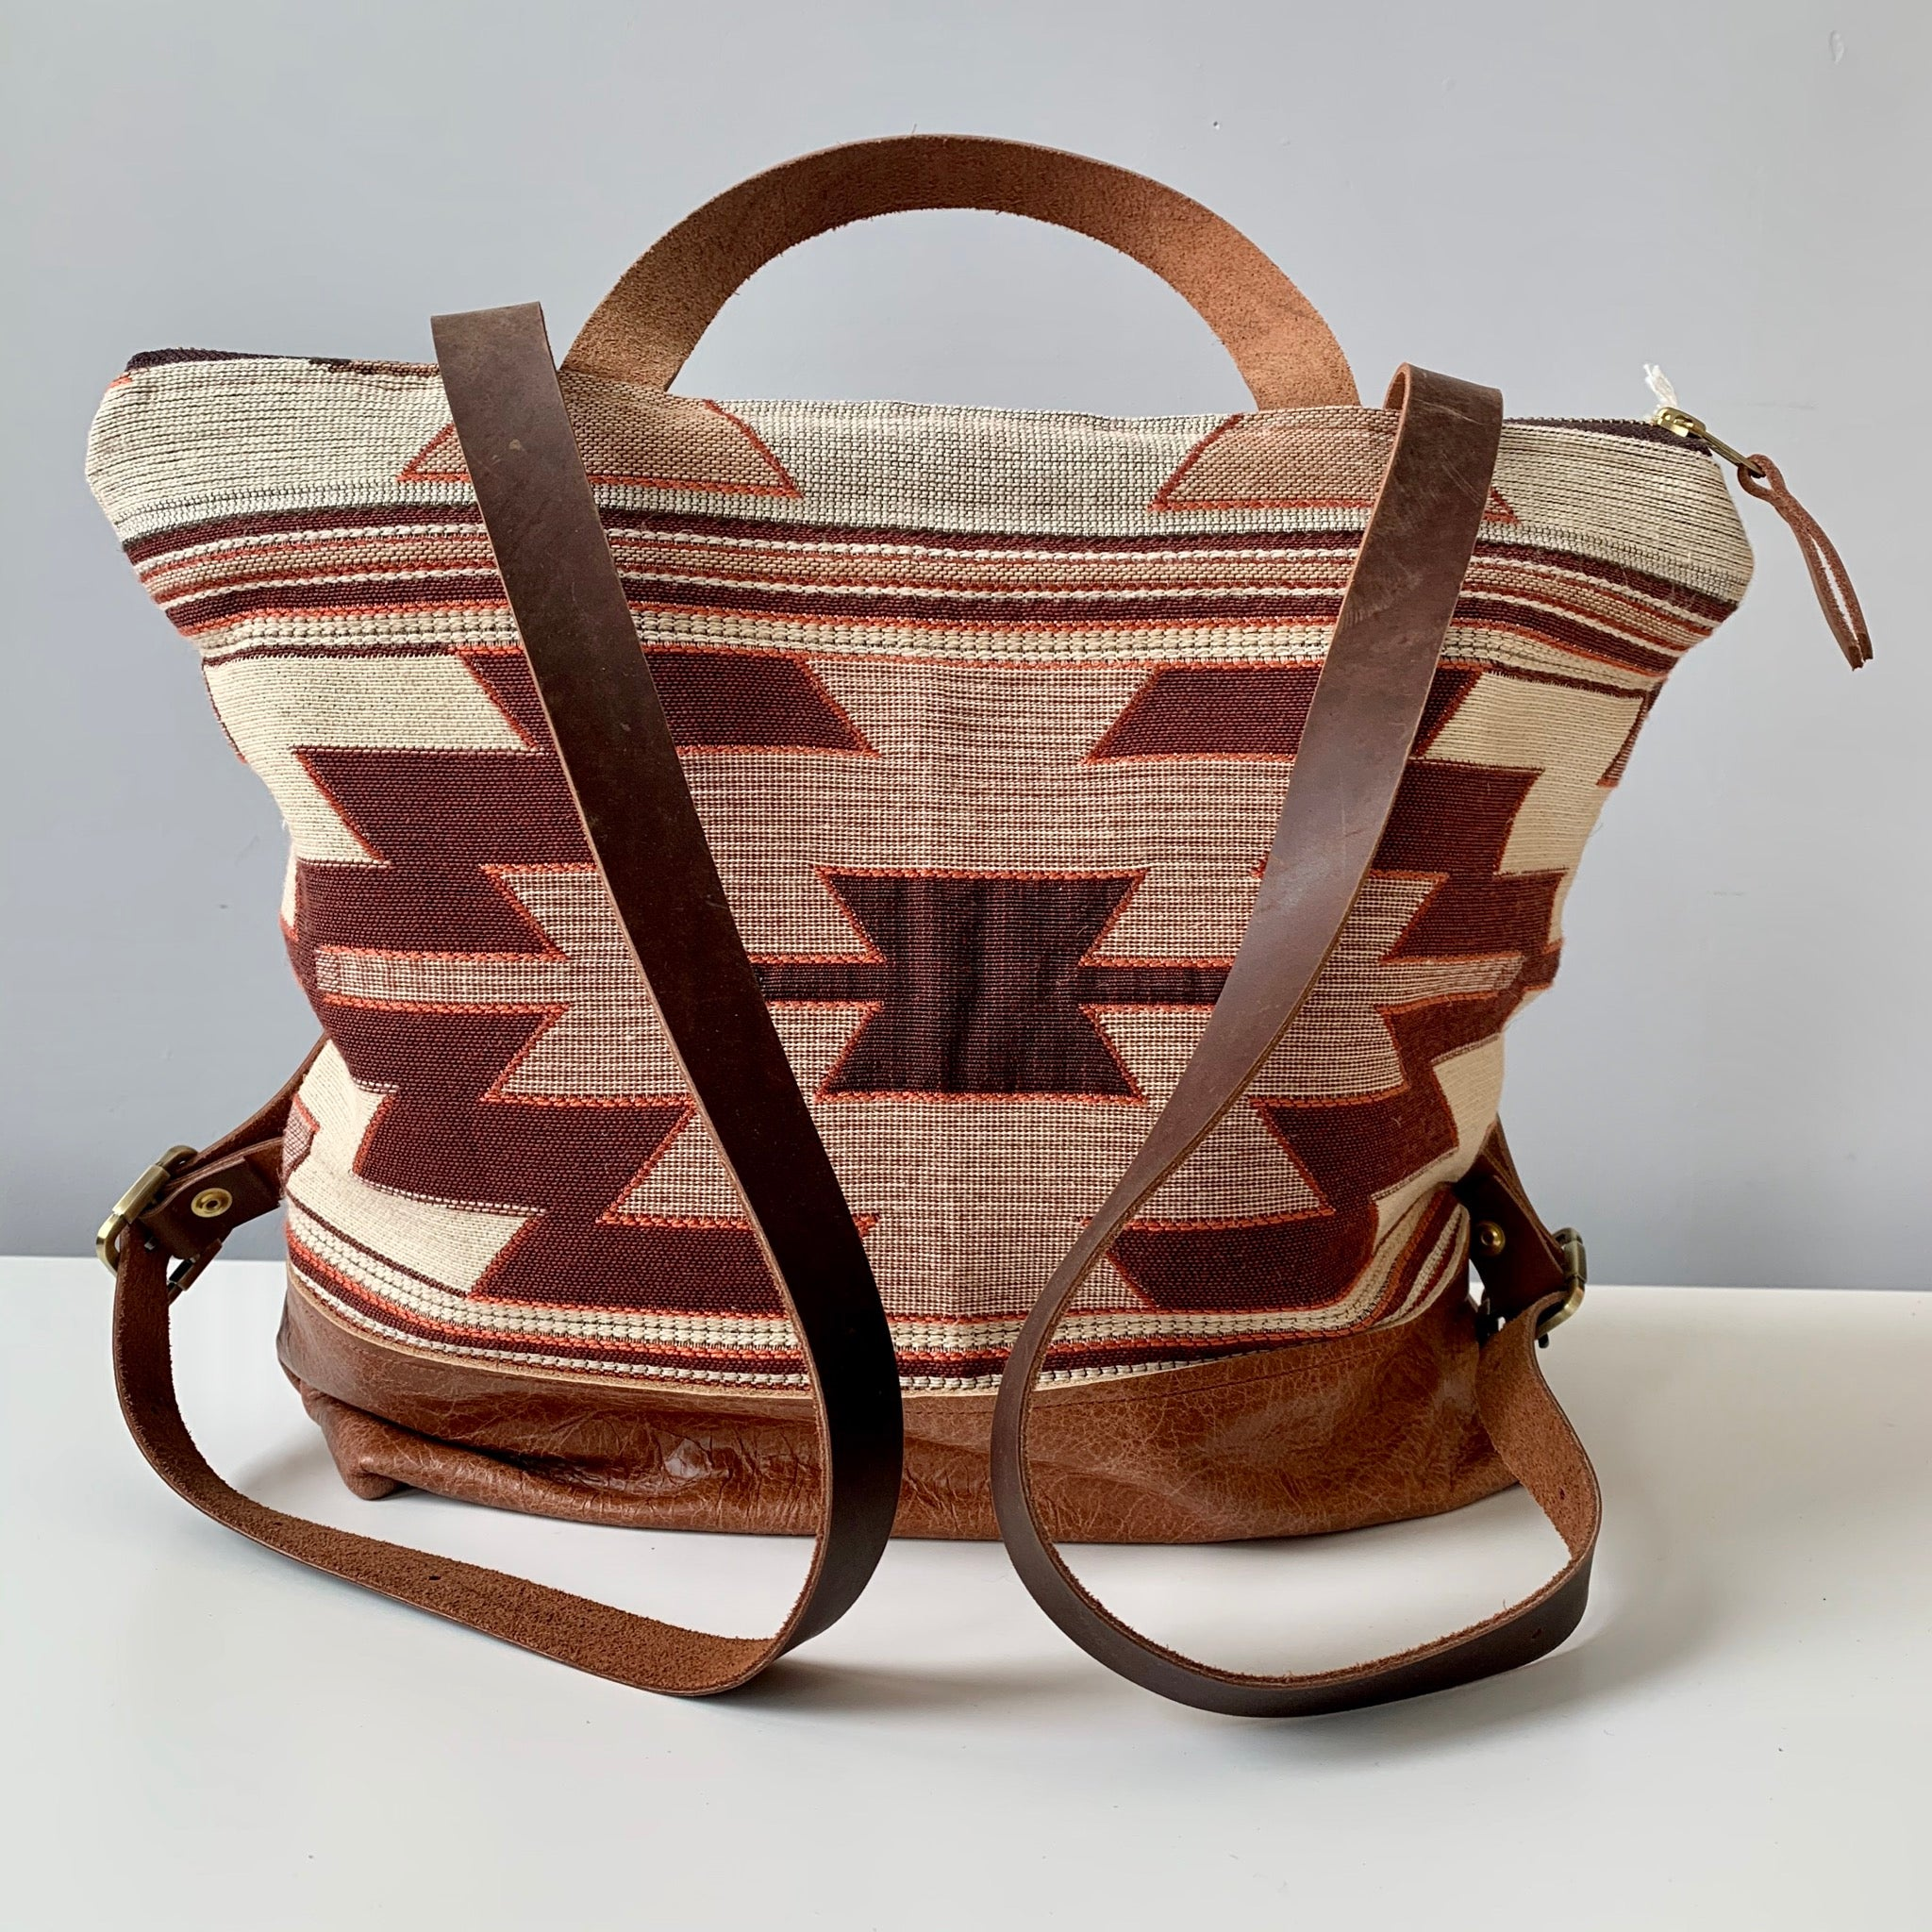 Made in Canada brown leather backpack purse with burgundy, red and beige southwestern patterned fabric.